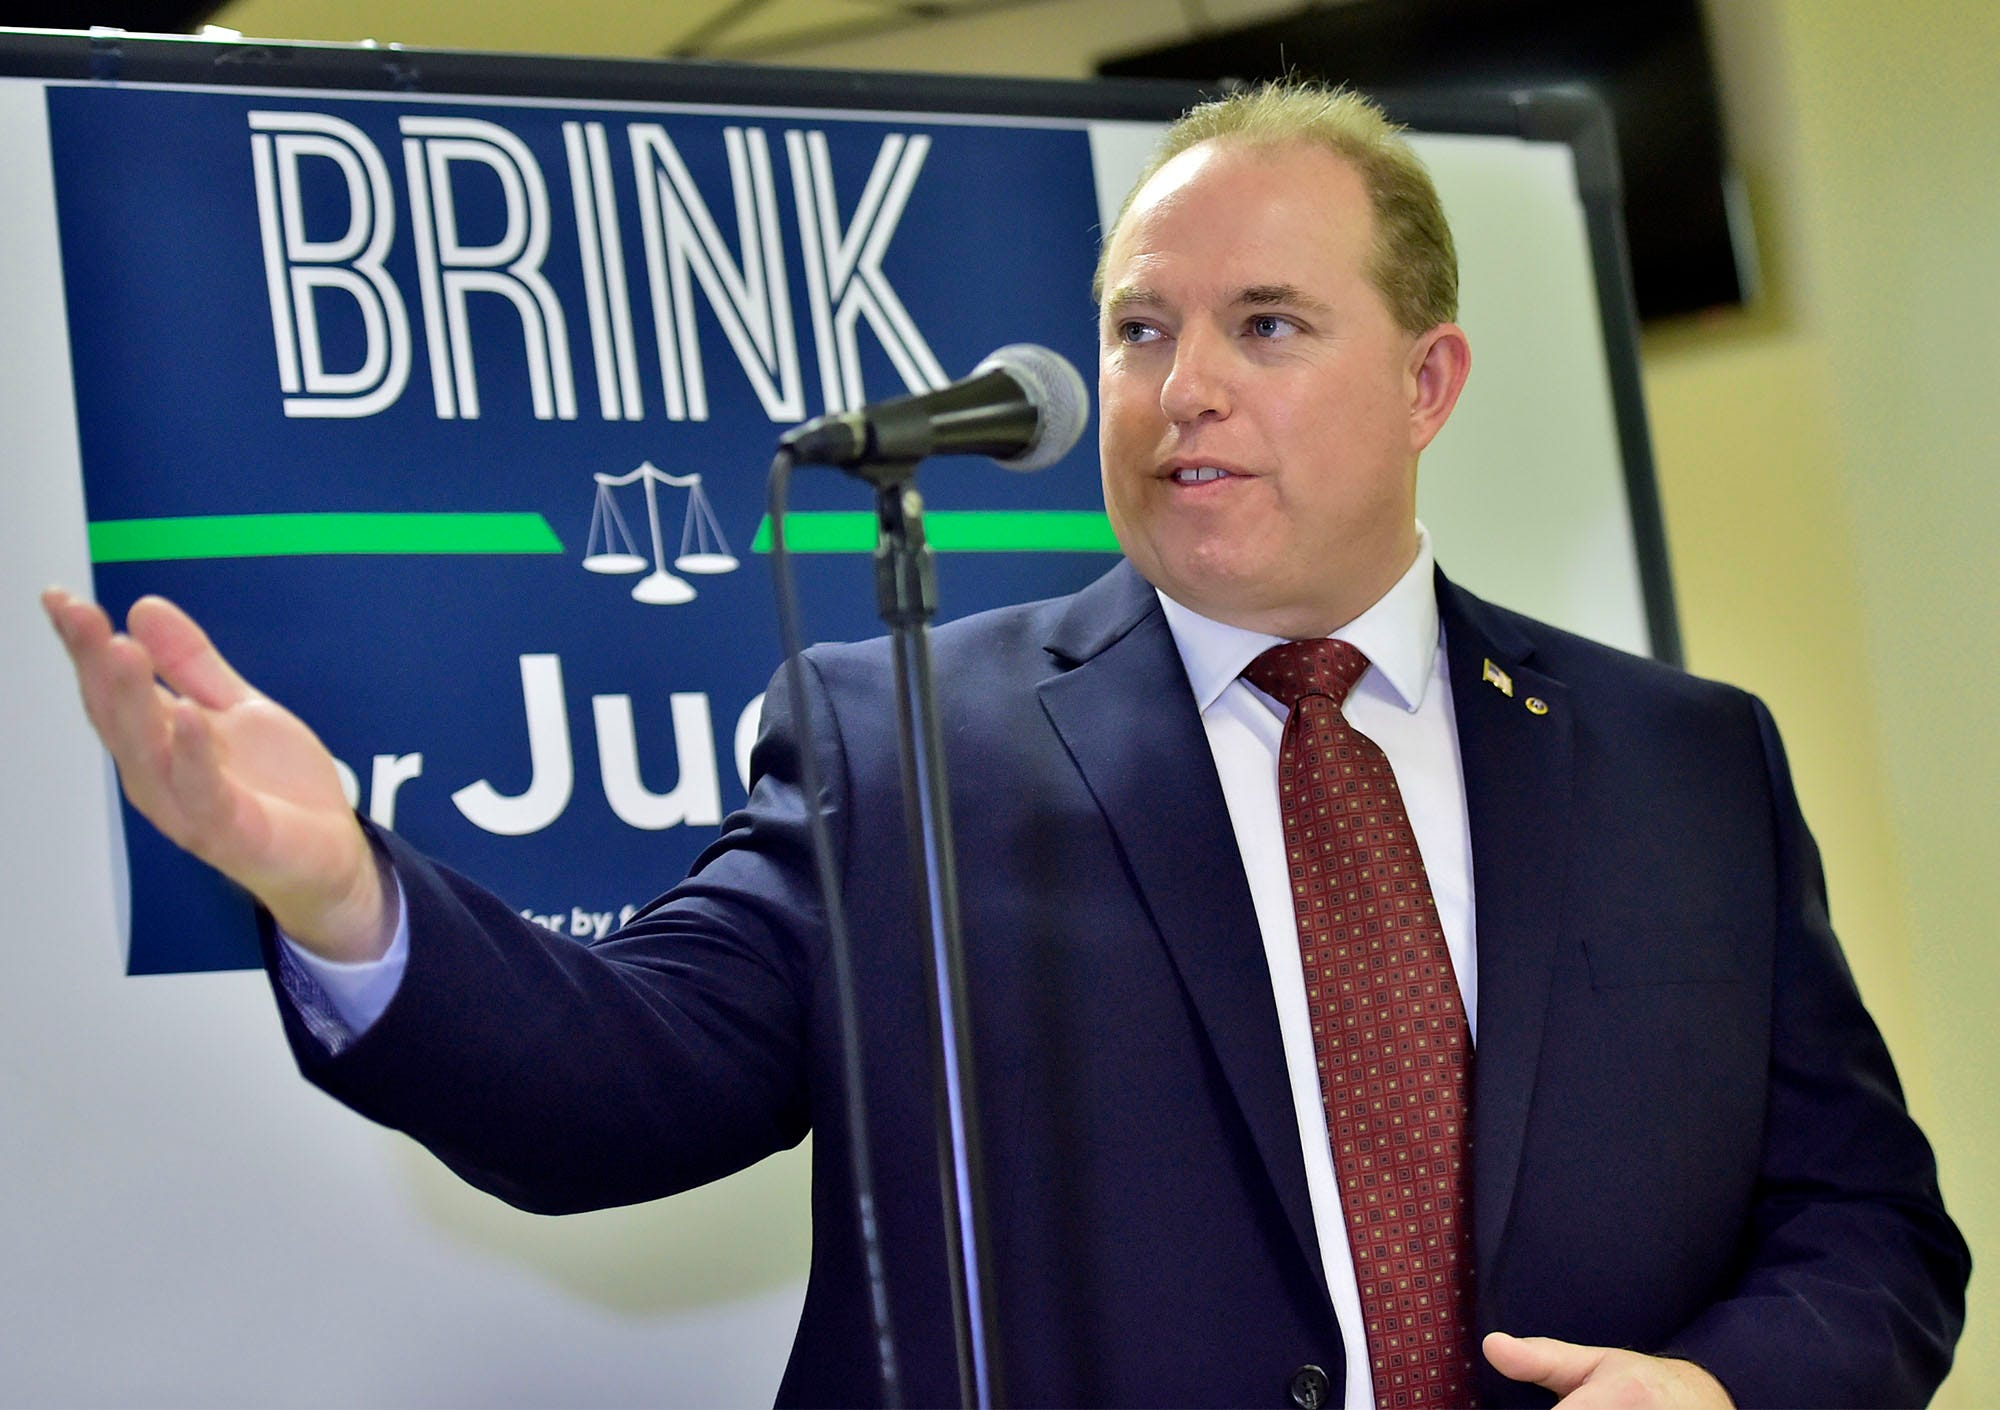 Ian Brink, pictured at his candidacy announcement on Nov. 27, 2018.